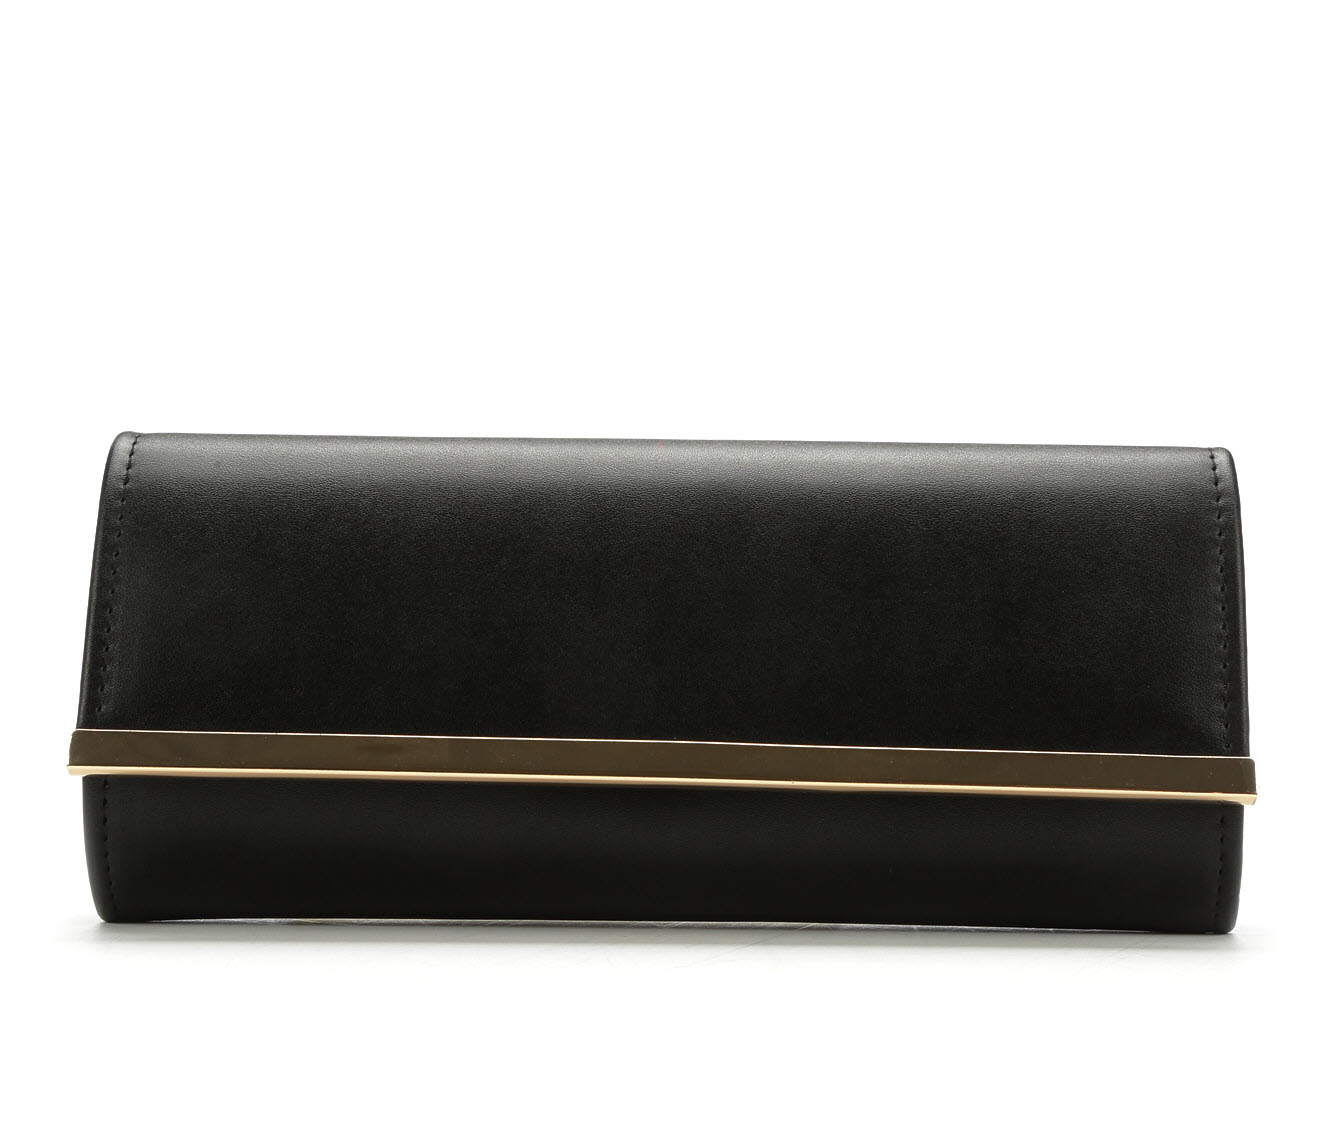 Four Seasons Handbags Faux Leather Evening Clutch (Black)